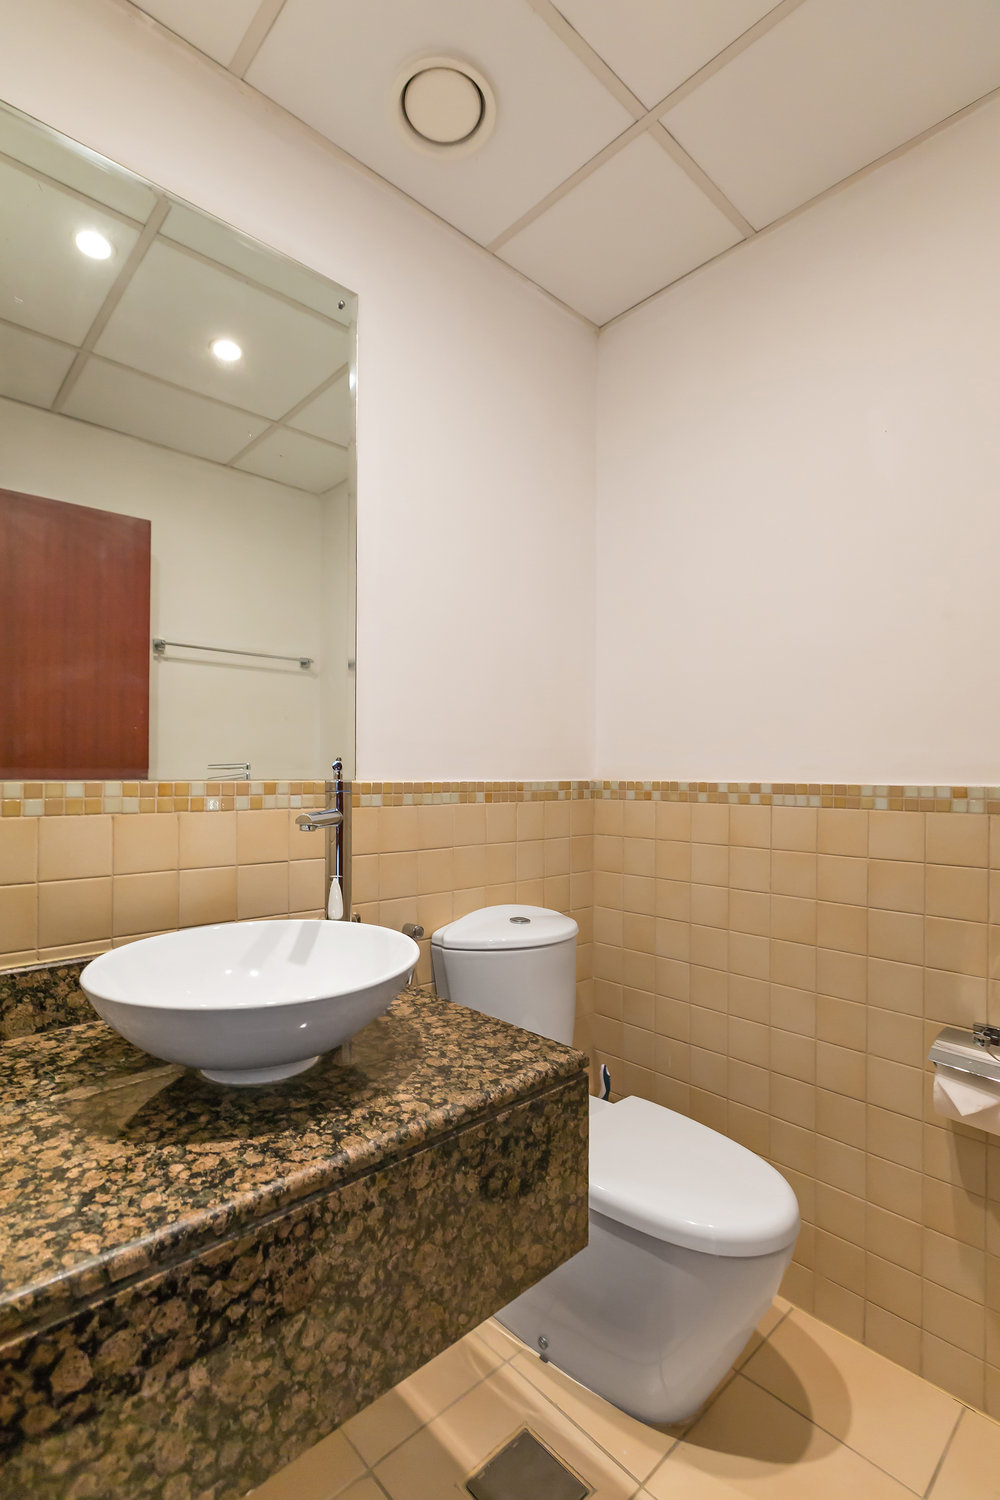 The bathroom fully equipped for your stay, with complimentary towels during your stay